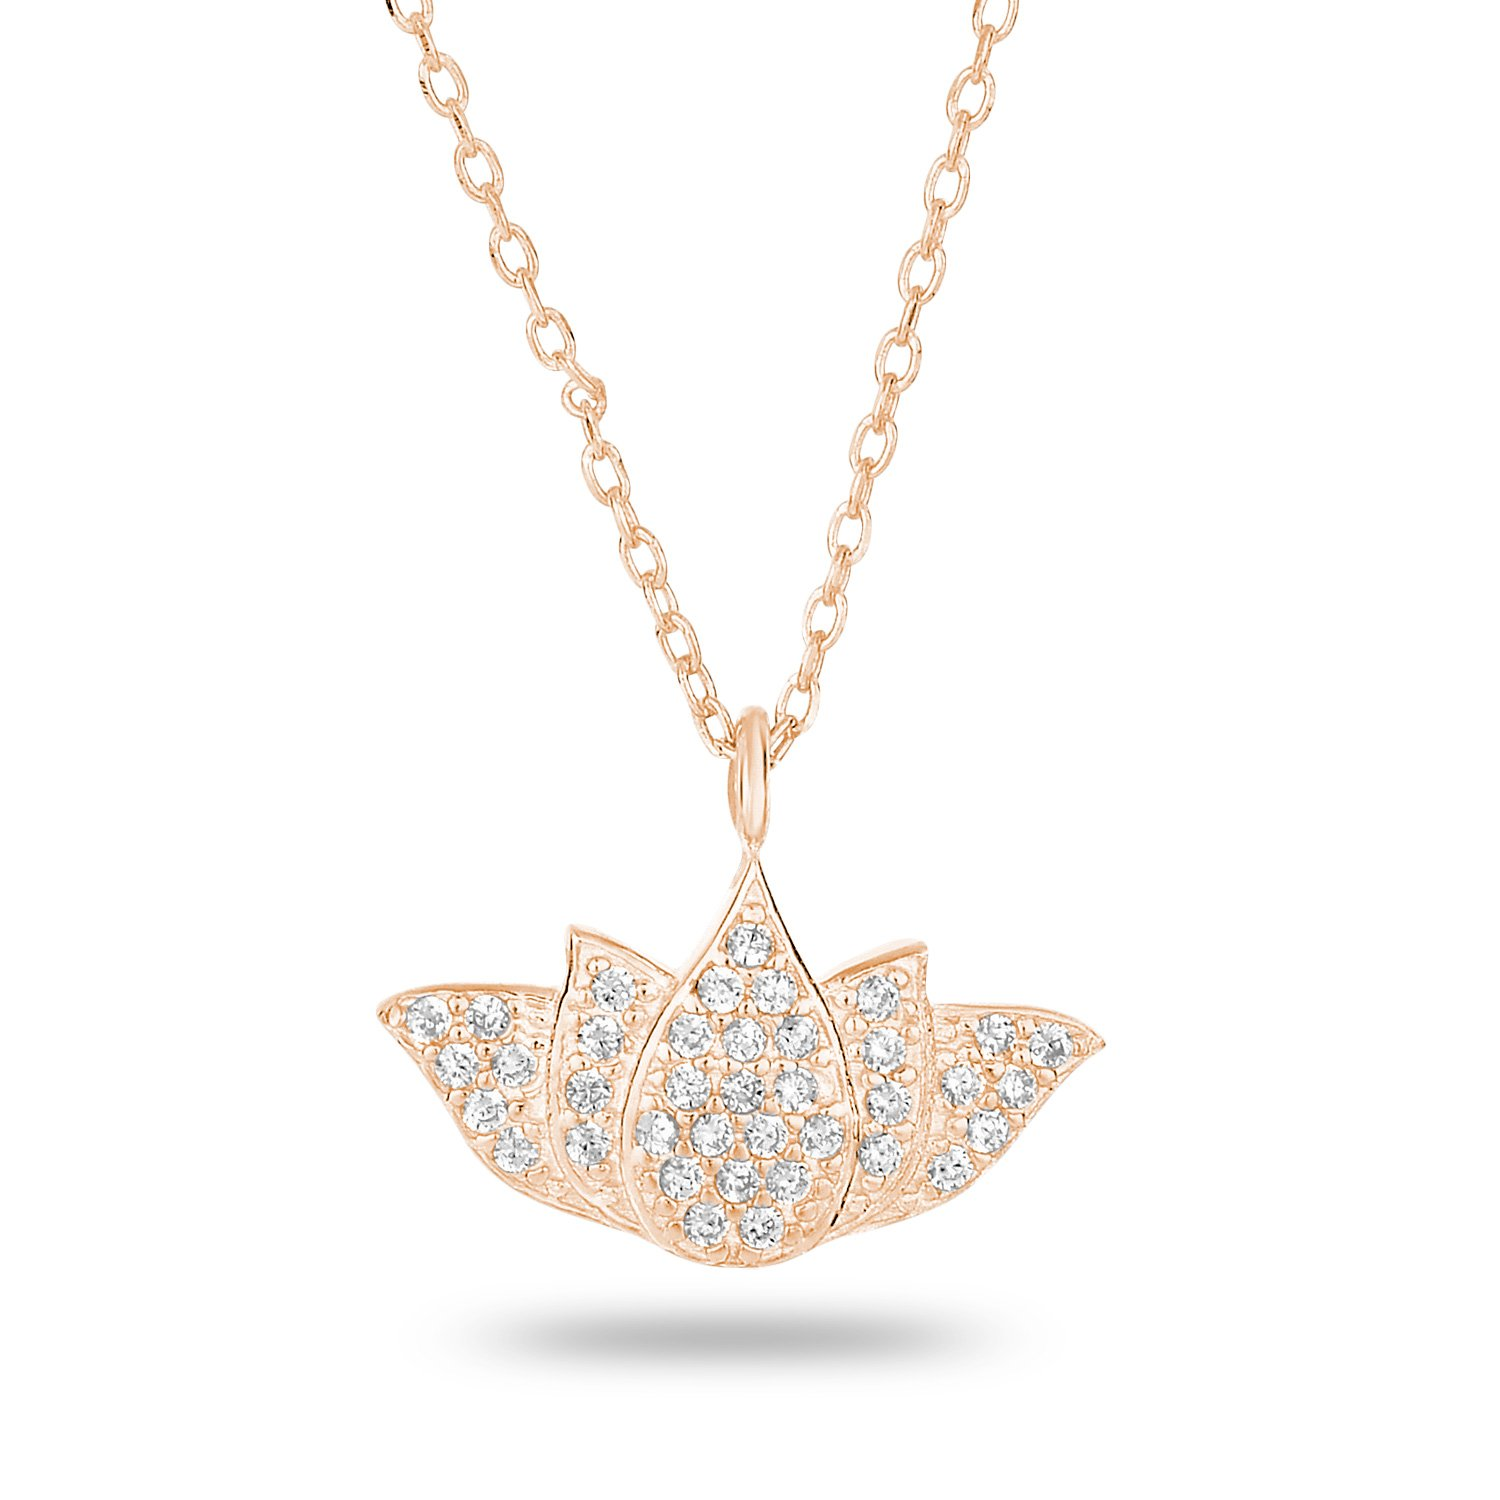 14k Rose Gold-Plated Sterling Silver Cubic Zirconia Pave Matte Finish Lotus Pendant Necklace, 18\